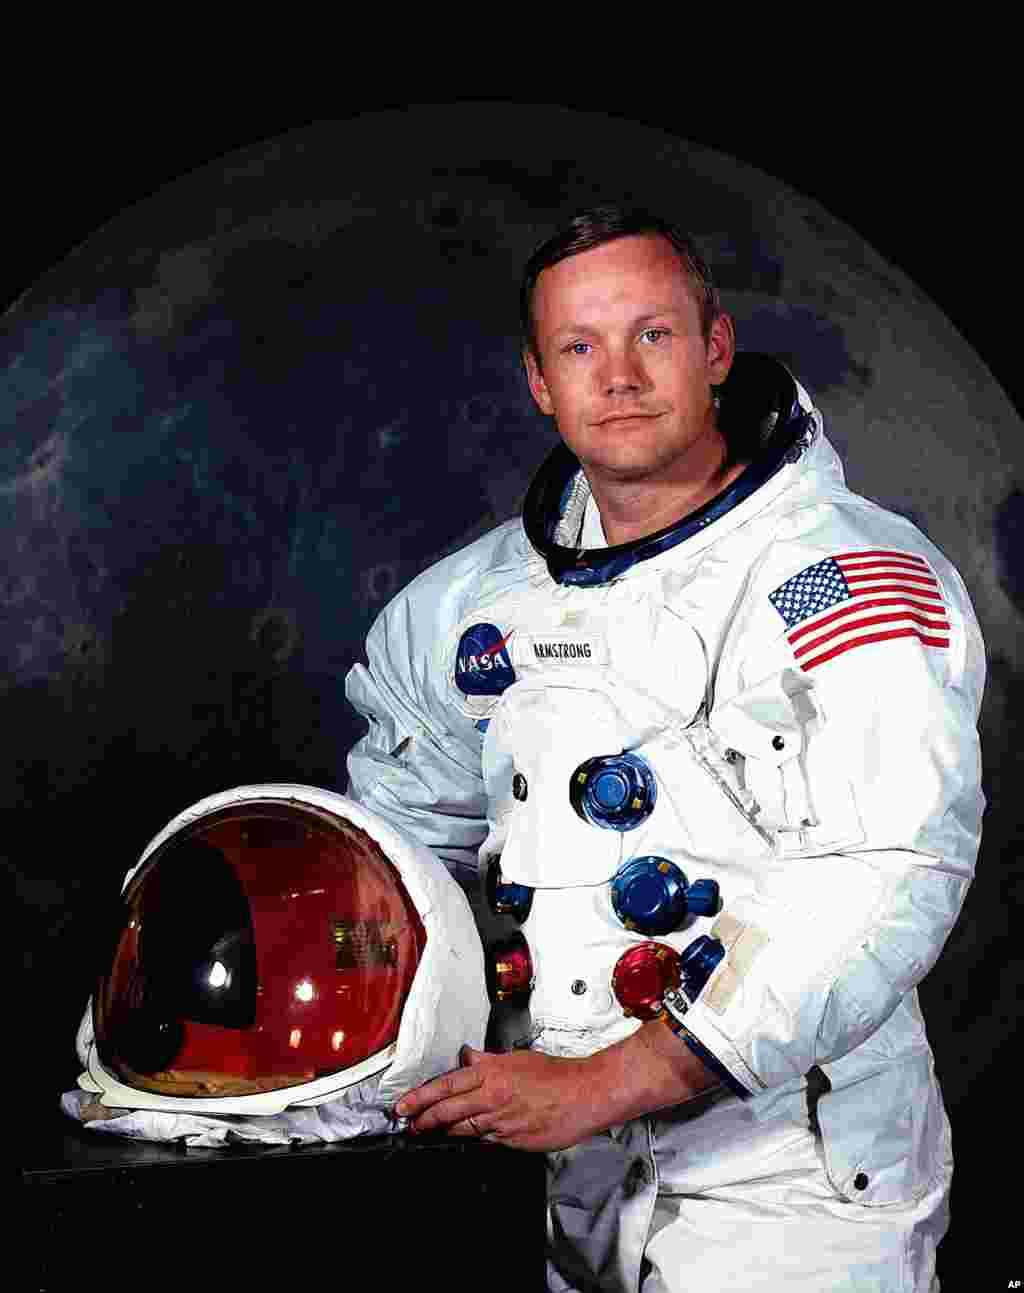 Undated file photo provided by NASA shows Neil Armstrong.